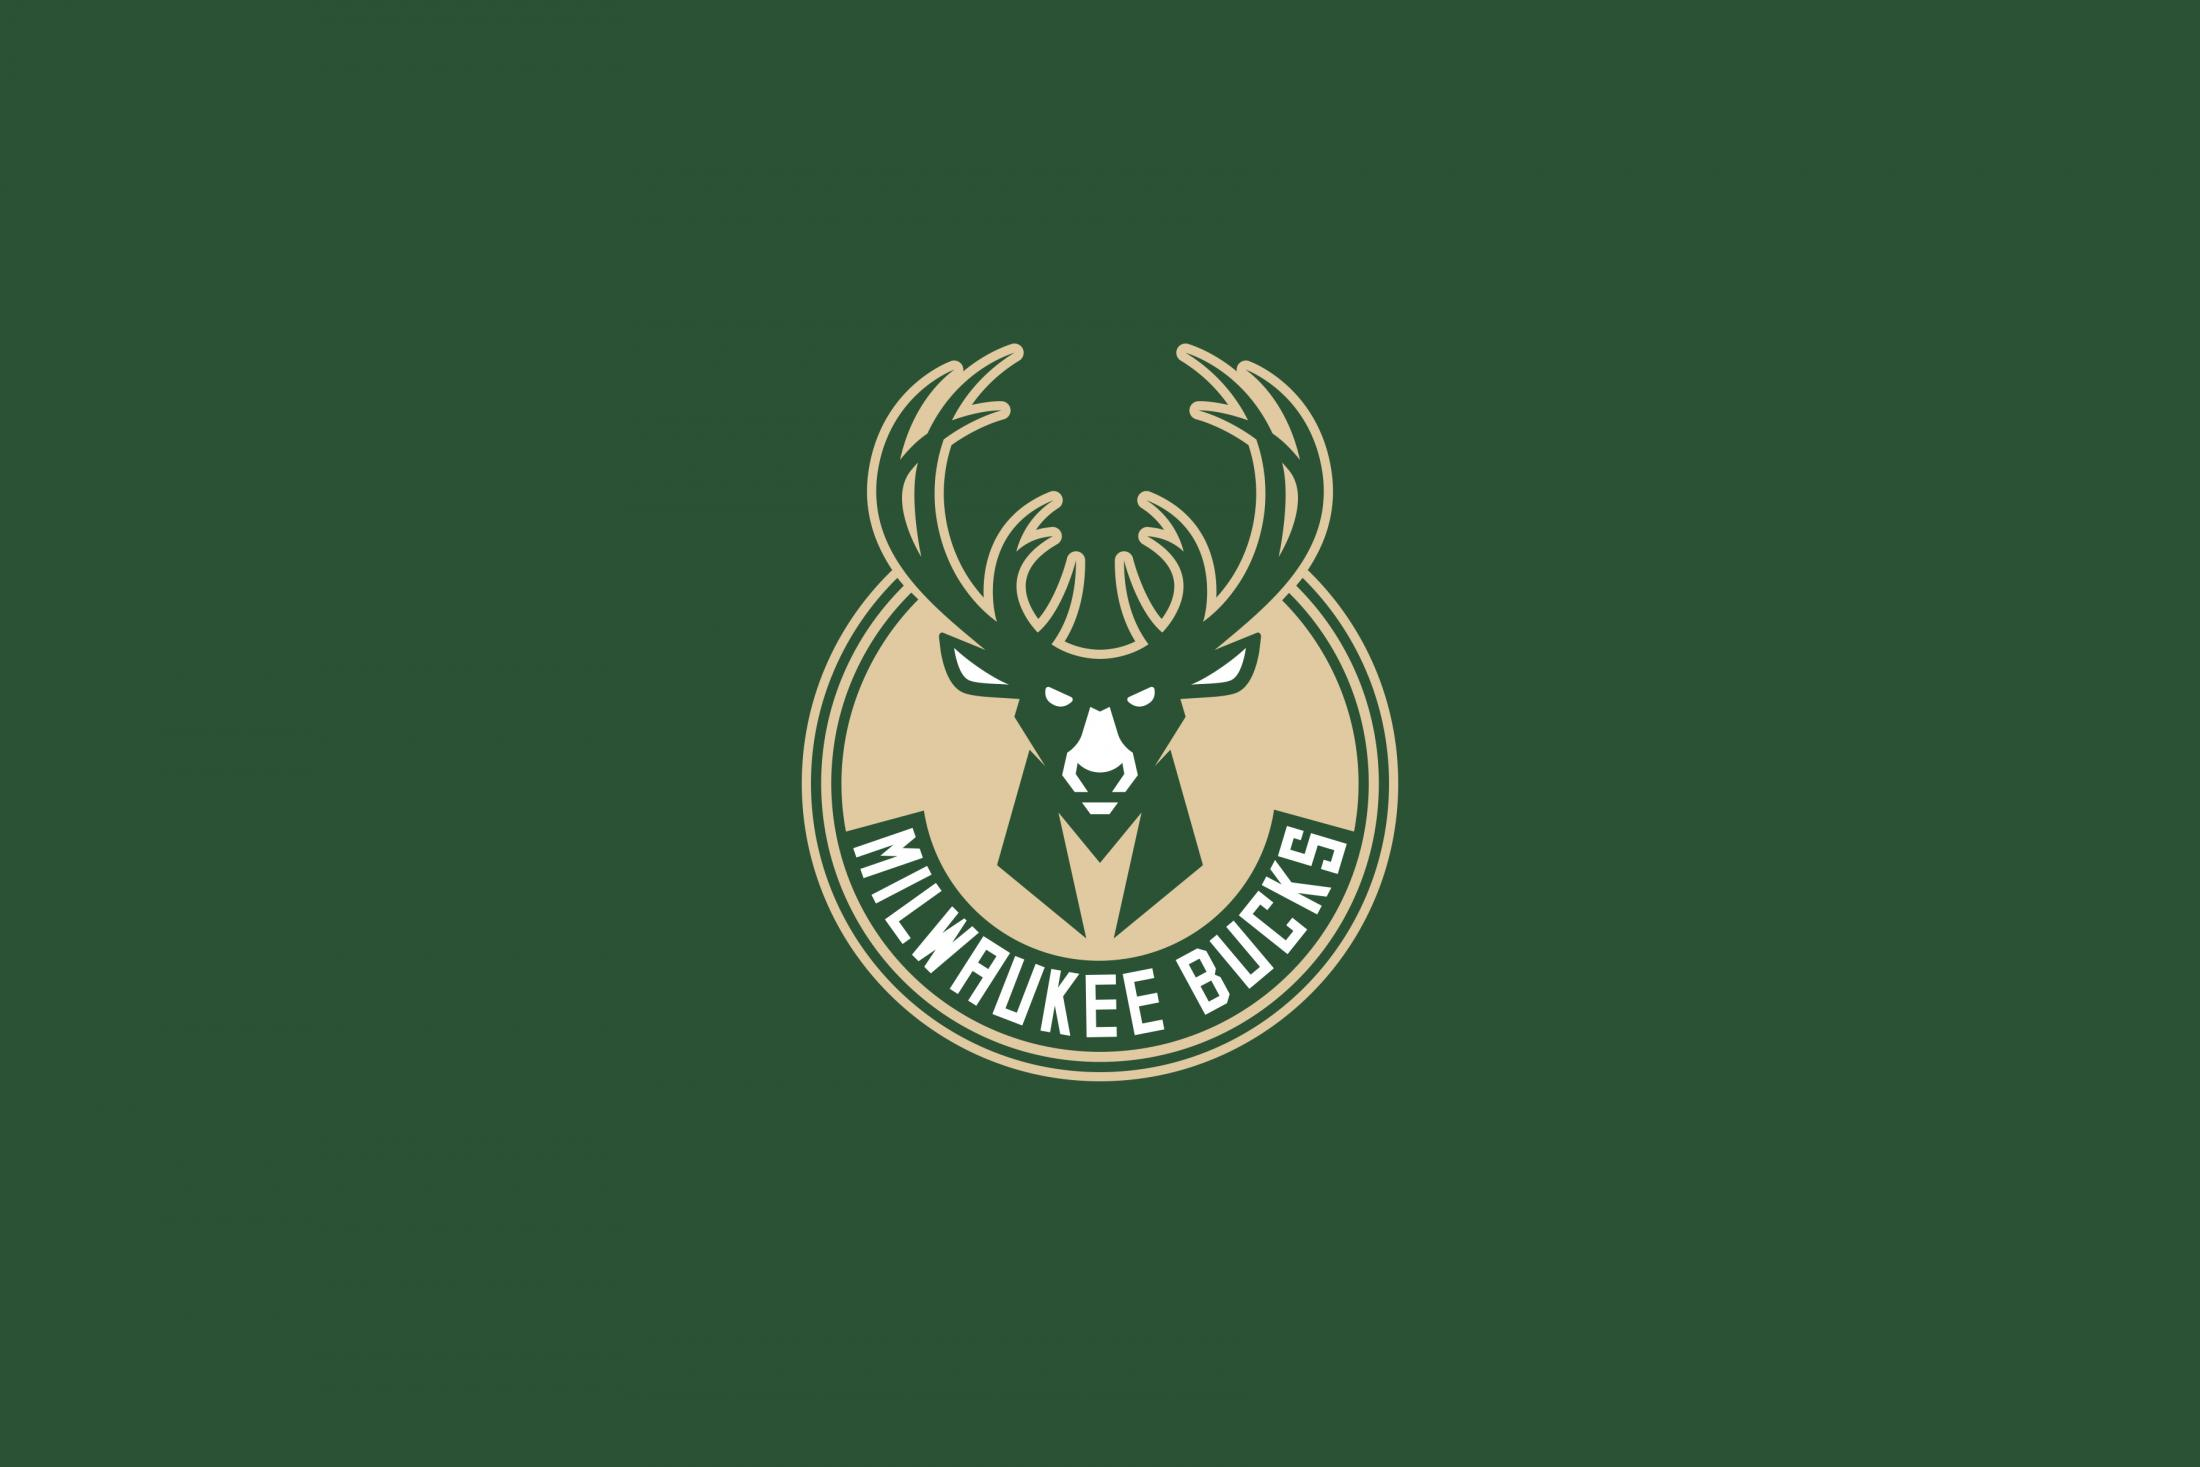 Thumbnail for Milwaukee Bucks Brand Identity Renovation